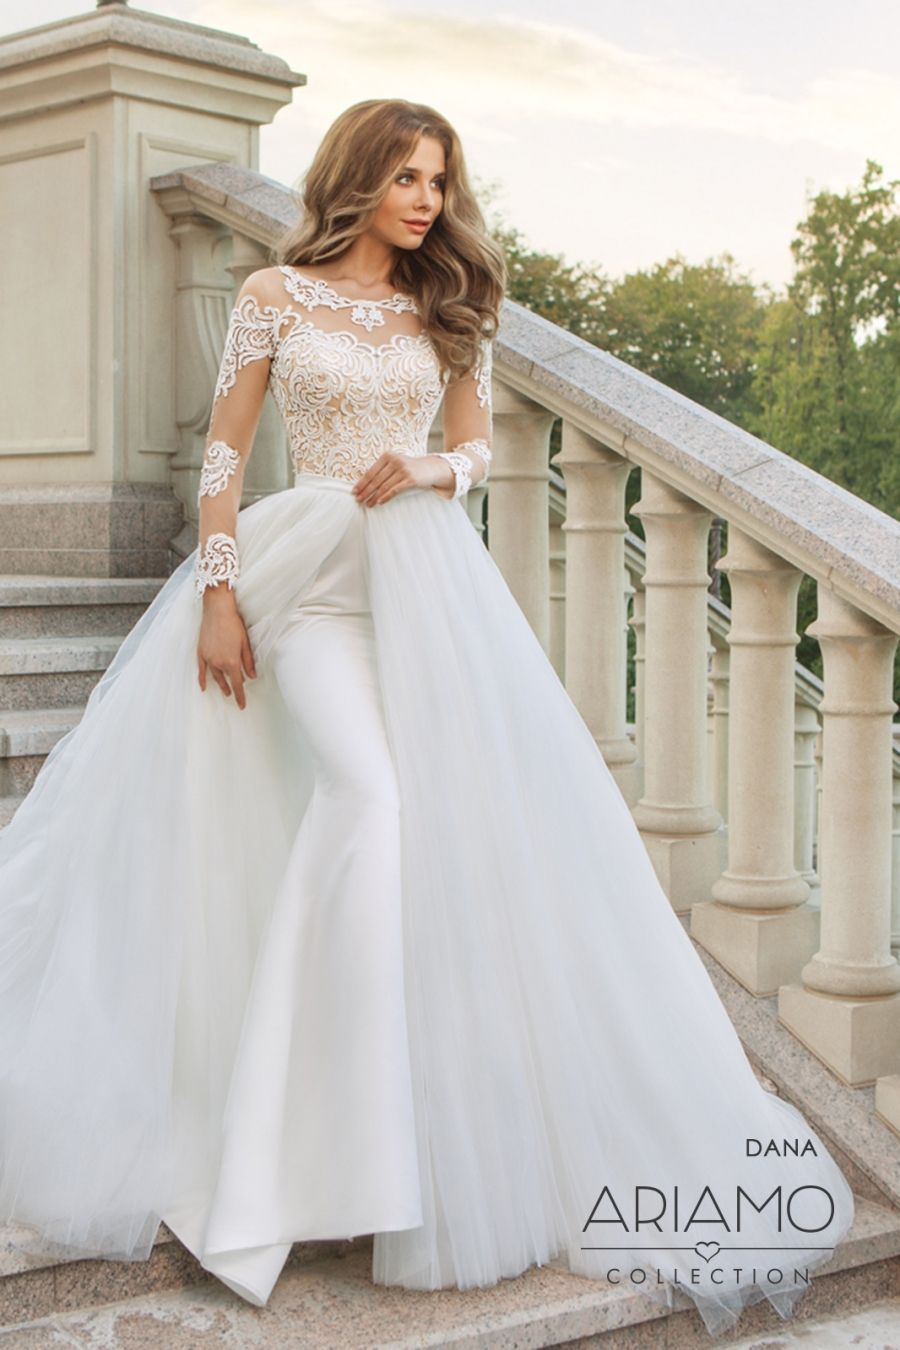 Cheap wedding dresses for military brides  Tulle skirt  試してみたいこと  Pinterest  Wedding dresses